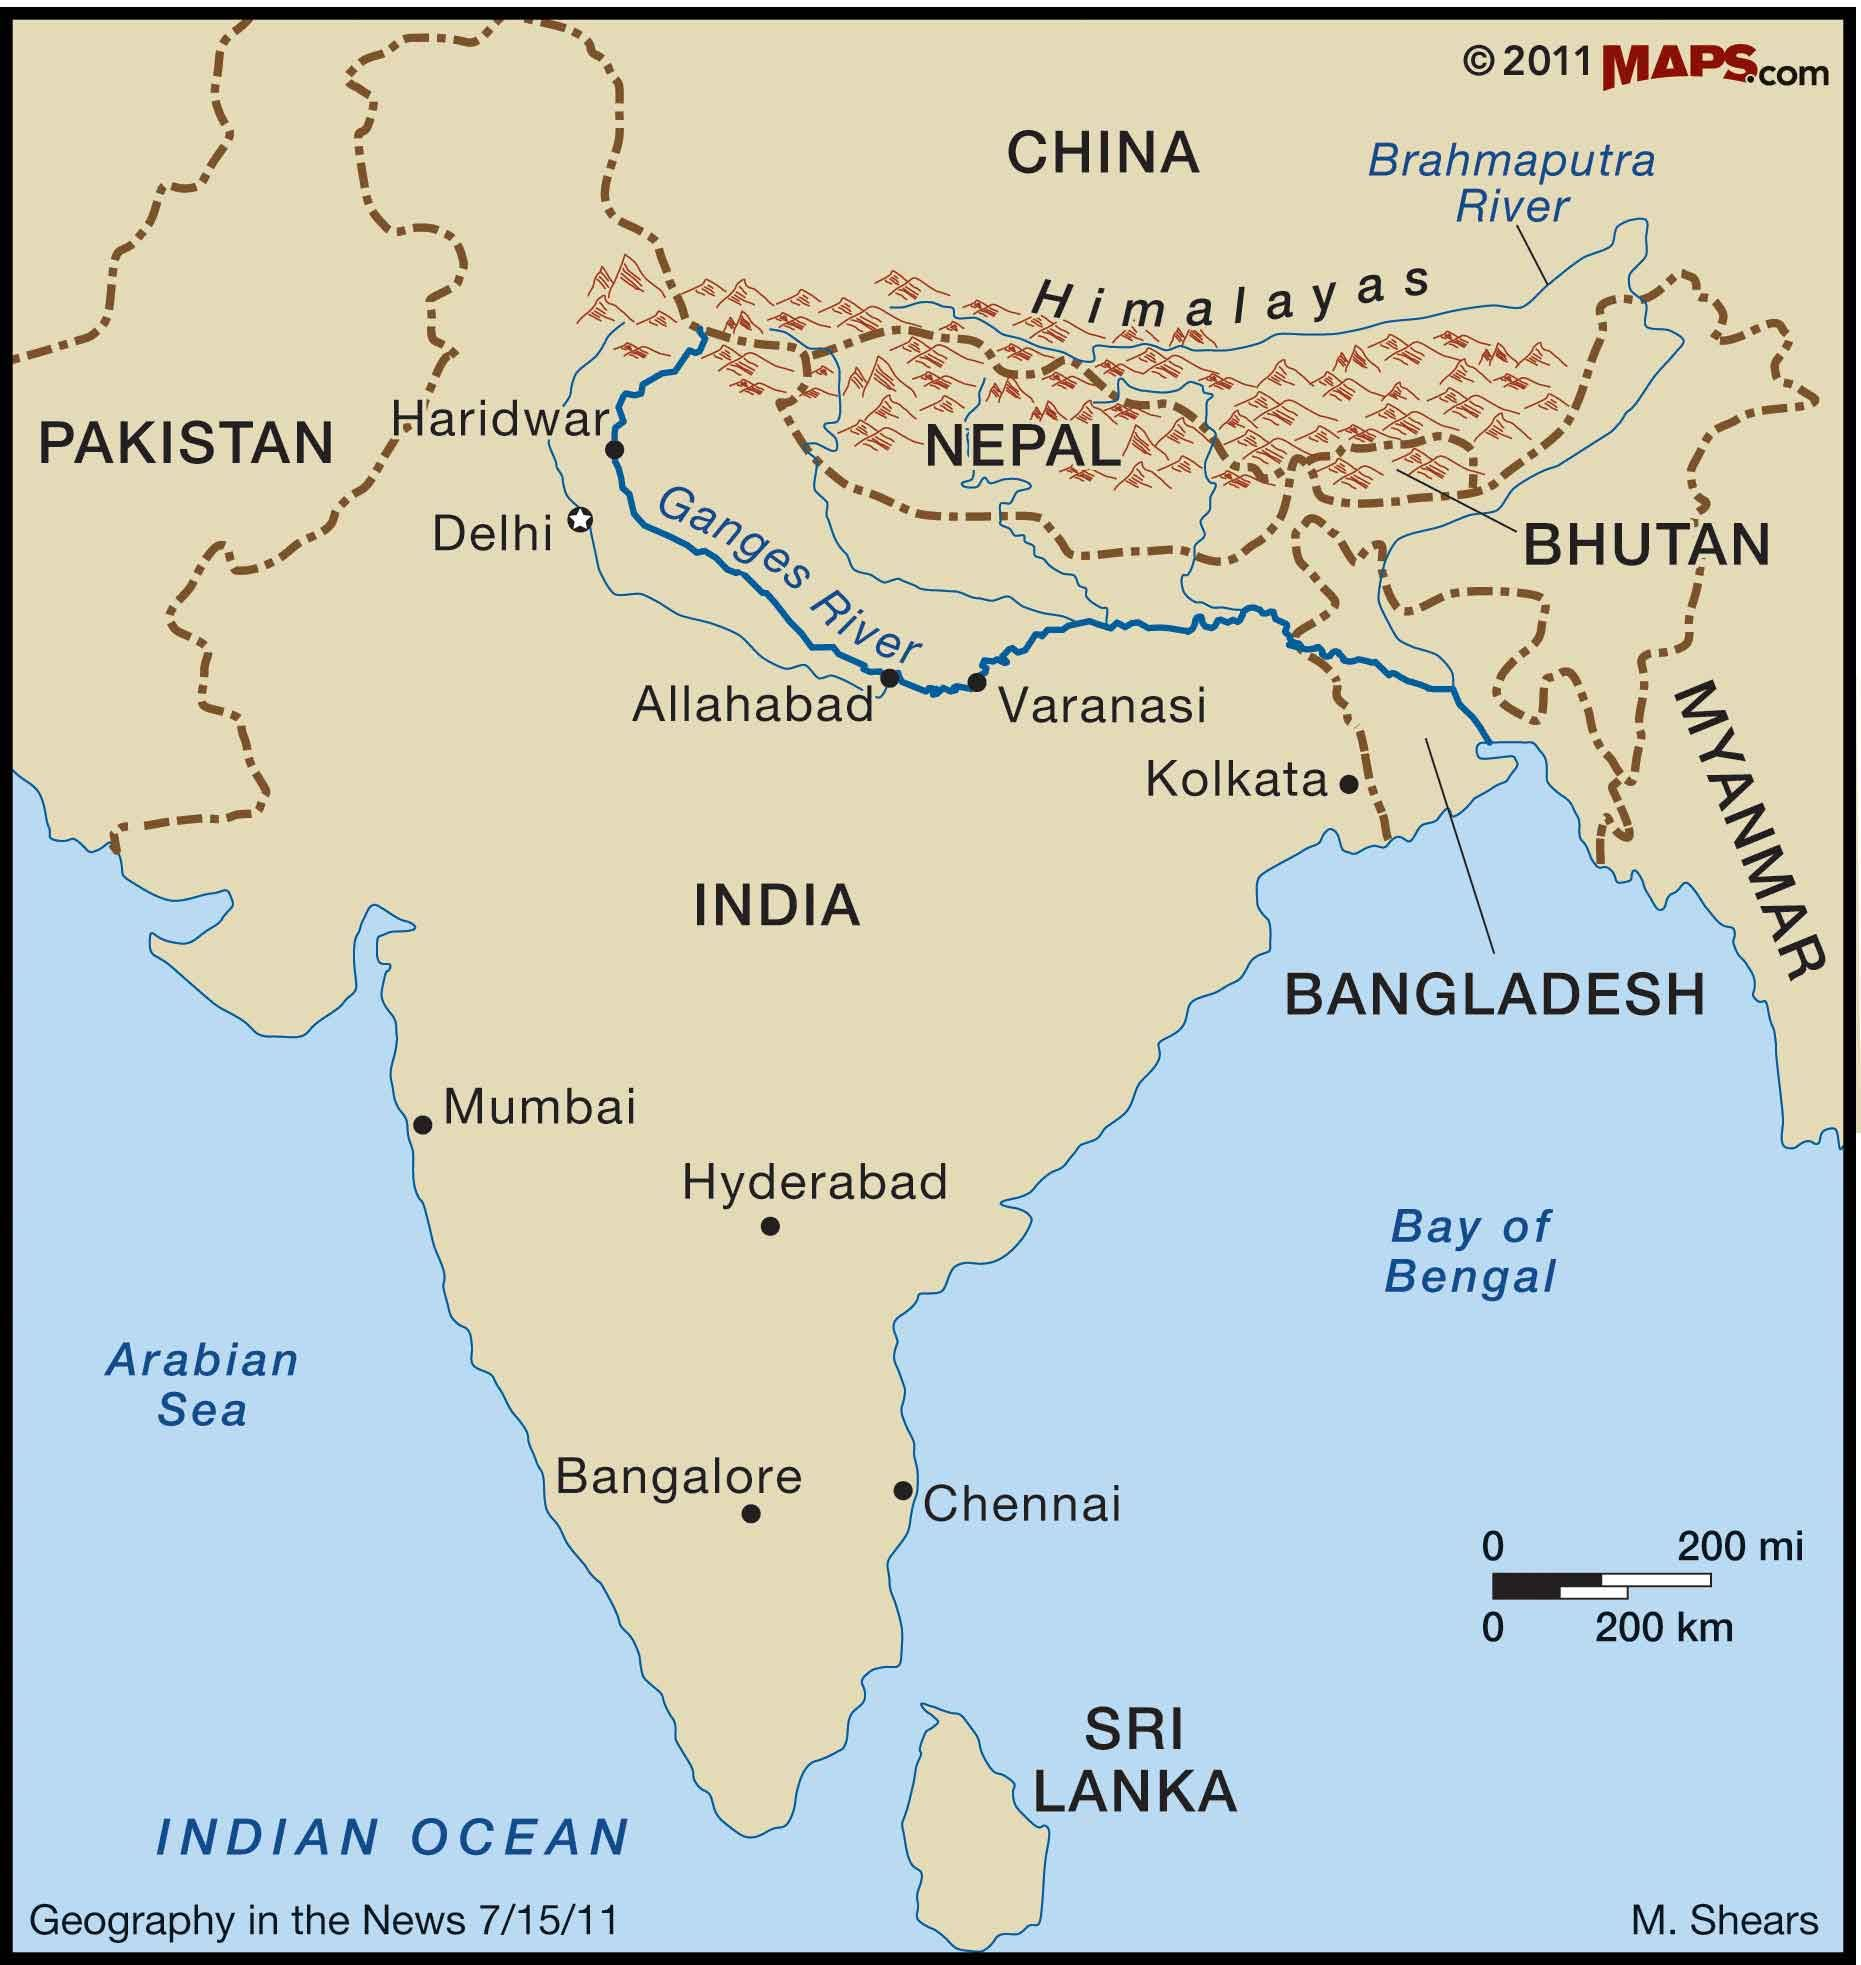 This picture shows the location of the Ganges river in India